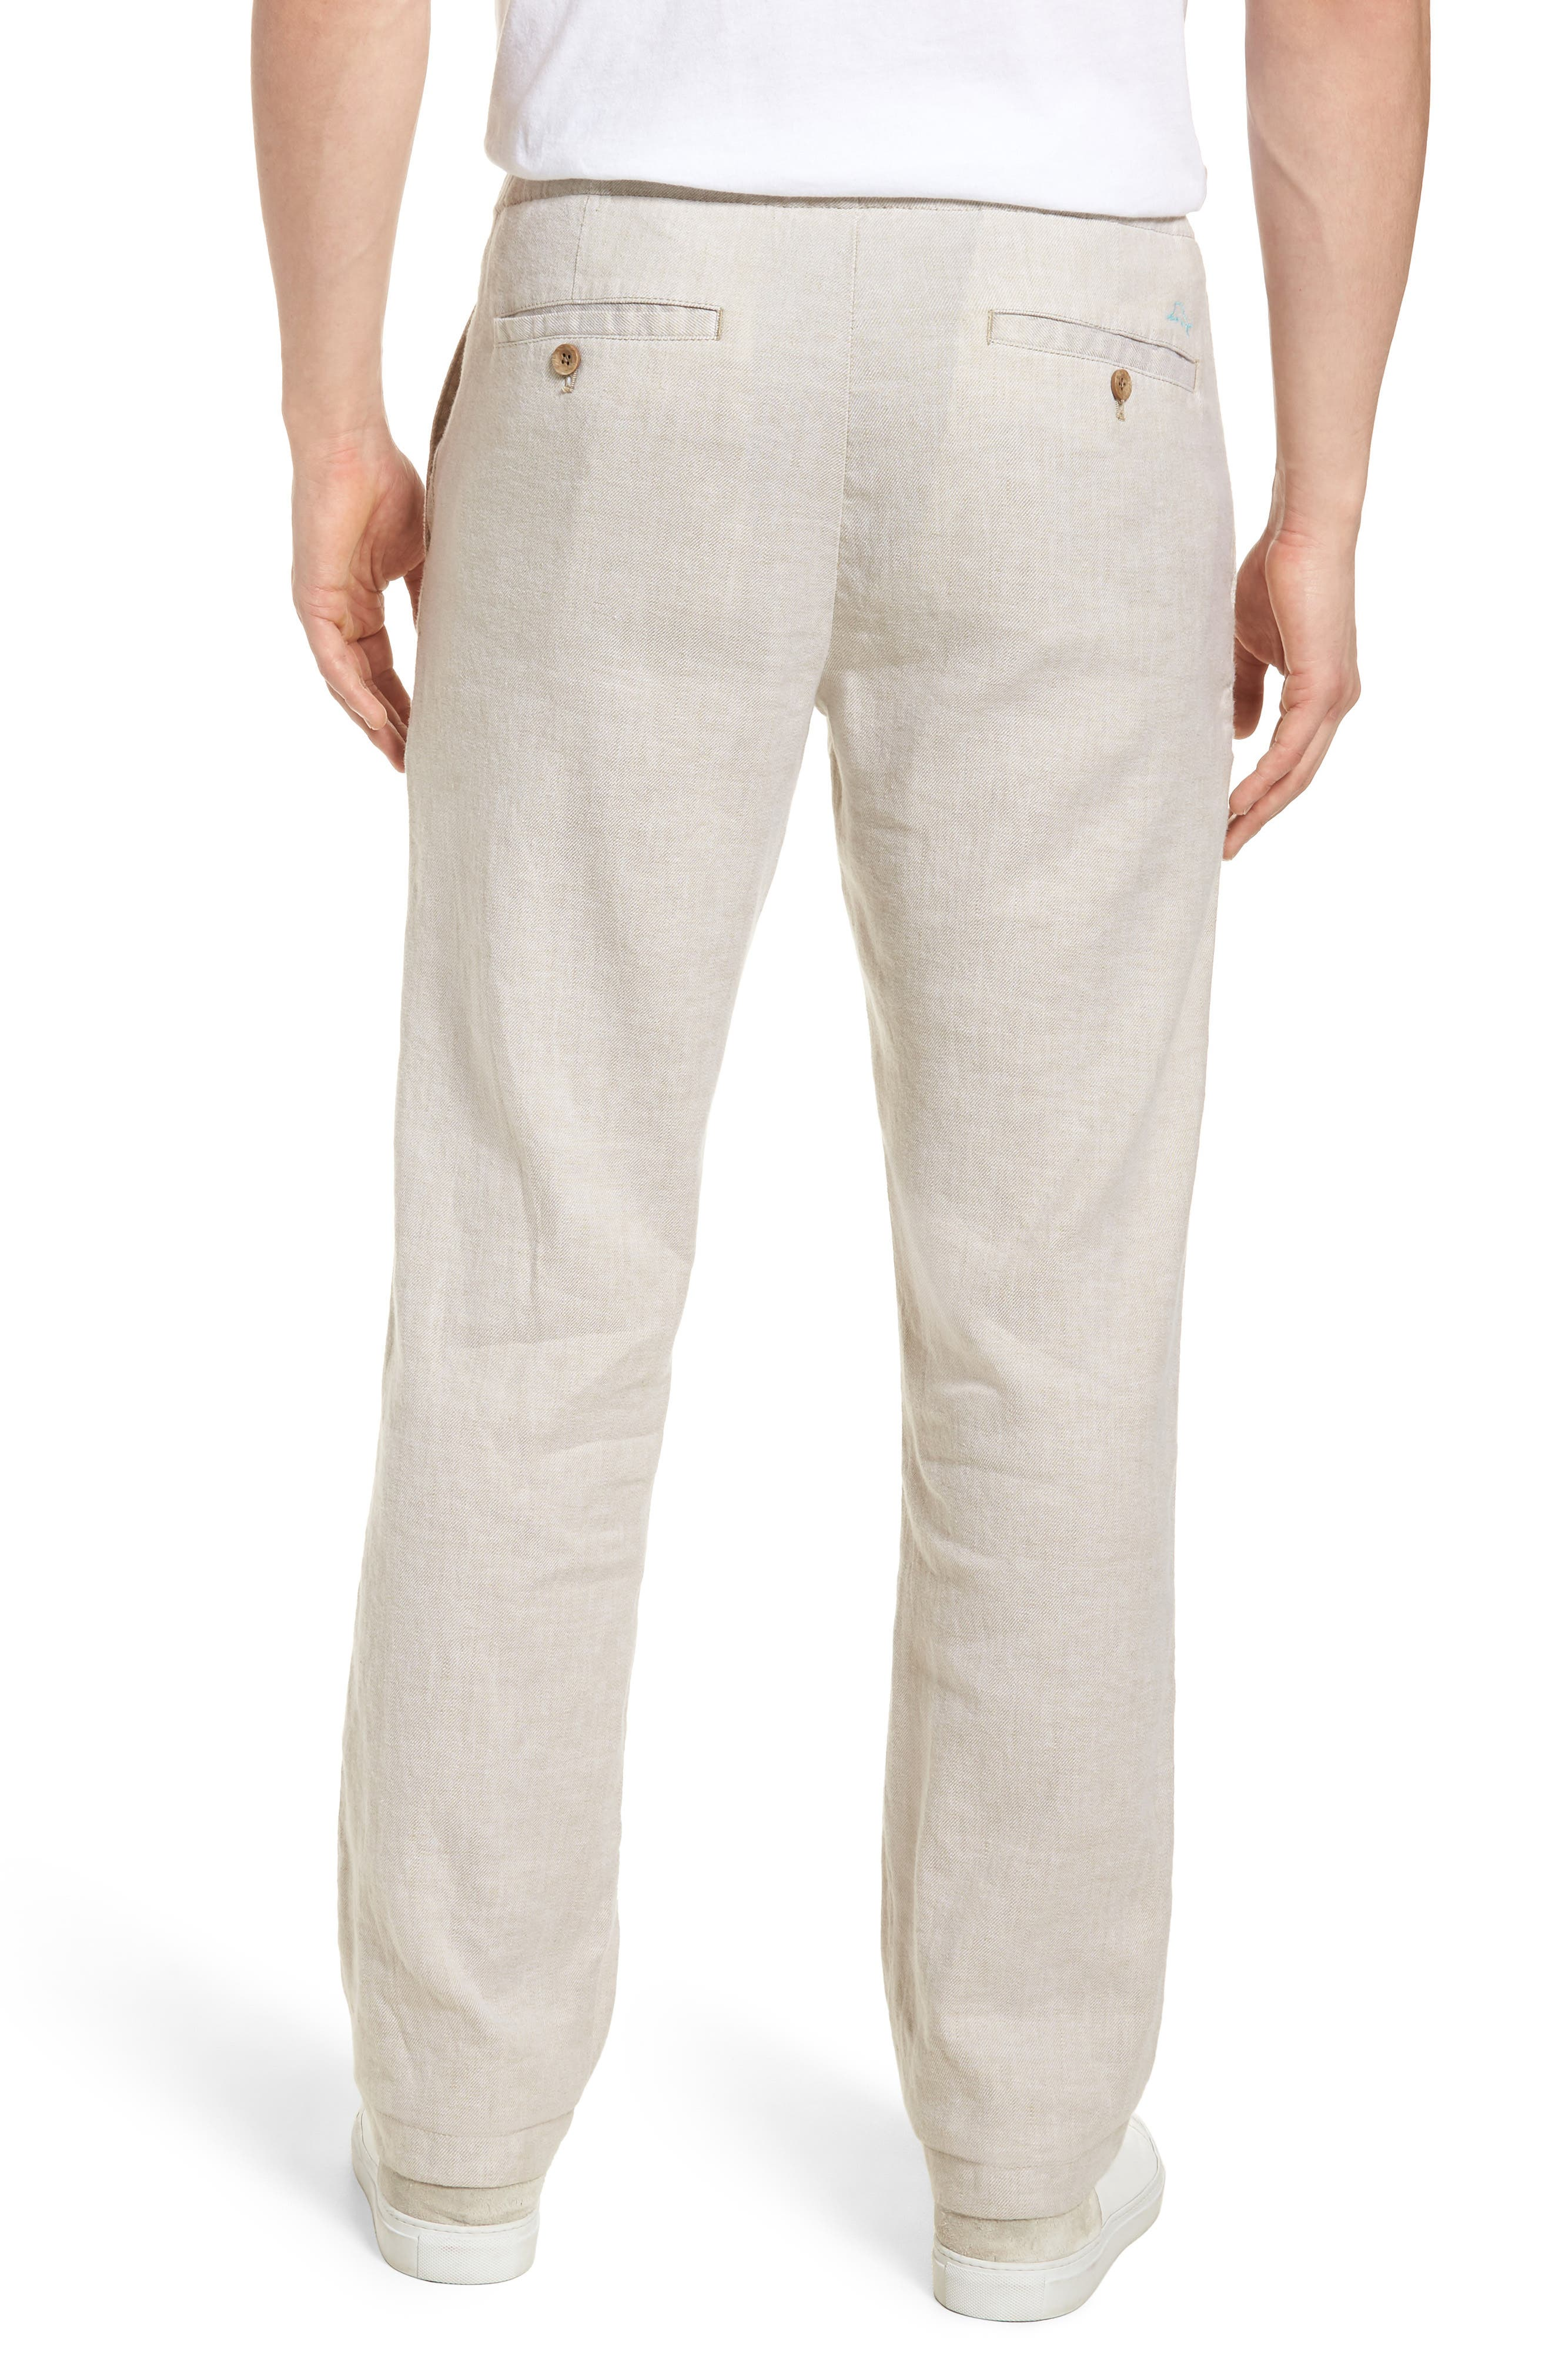 TOMMY BAHAMA,                             Beach Linen Blend Pants,                             Alternate thumbnail 2, color,                             STONE KHAKI